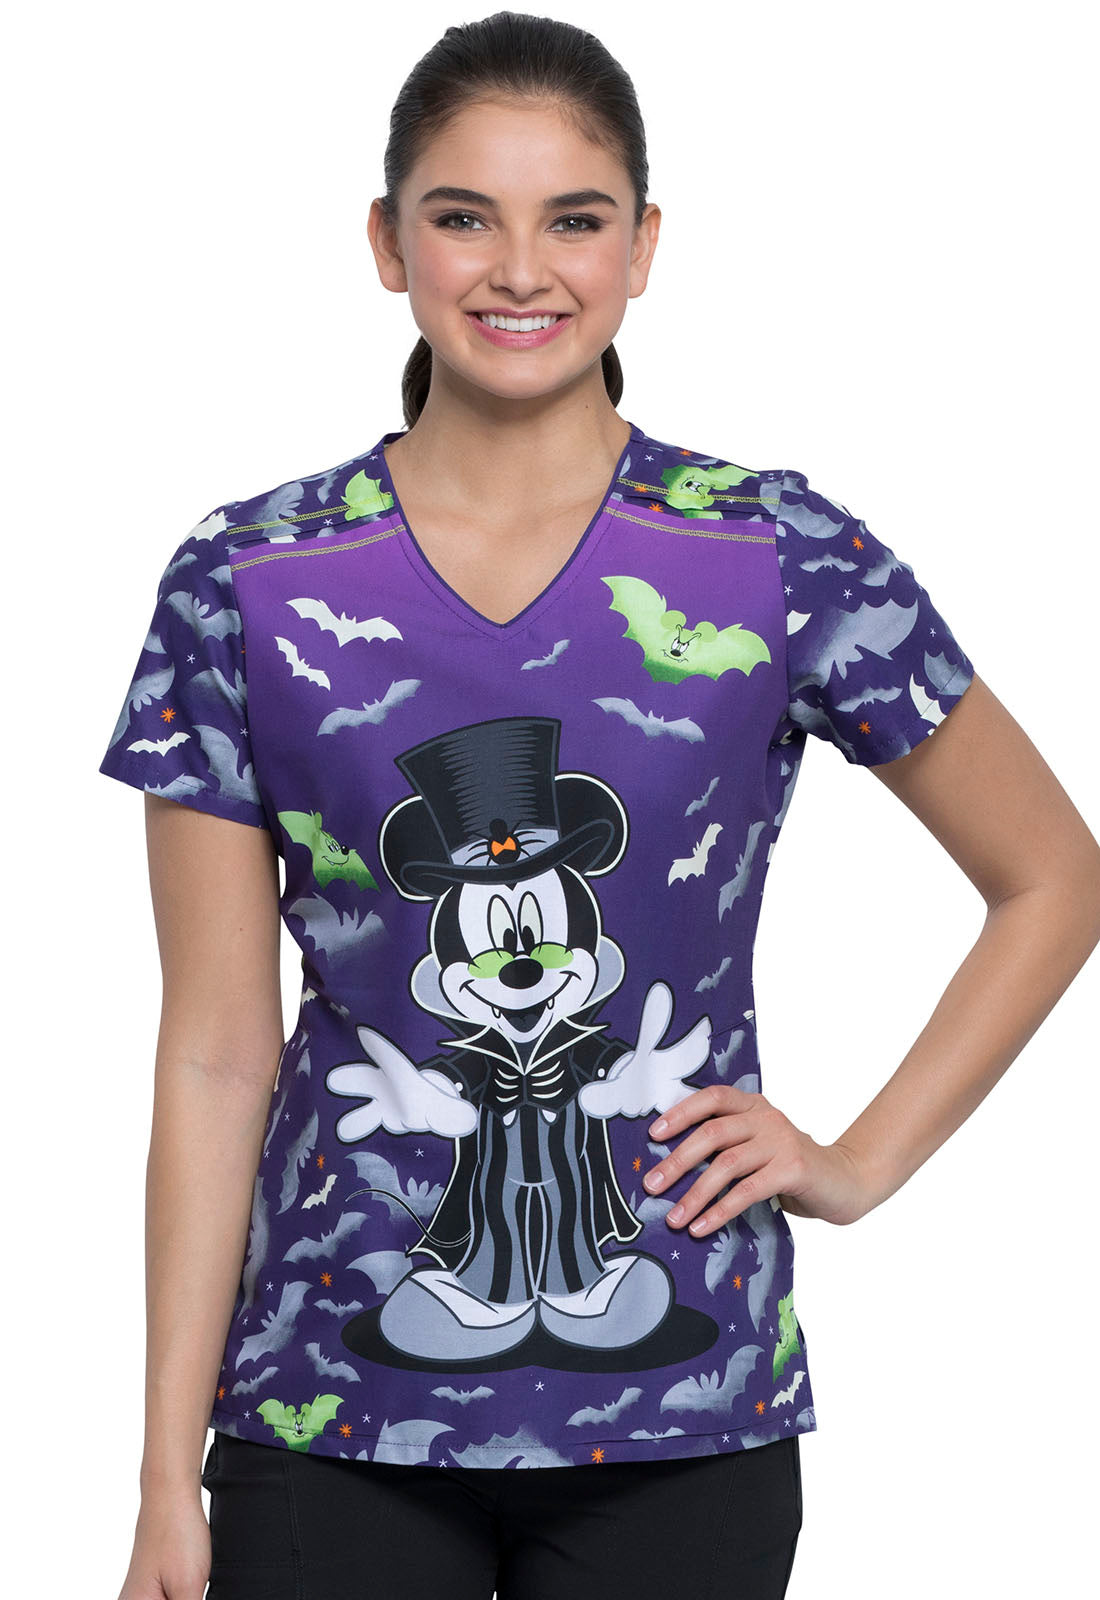 Tooniforms Mickey Vampire Print Top - Company Store Uniforms